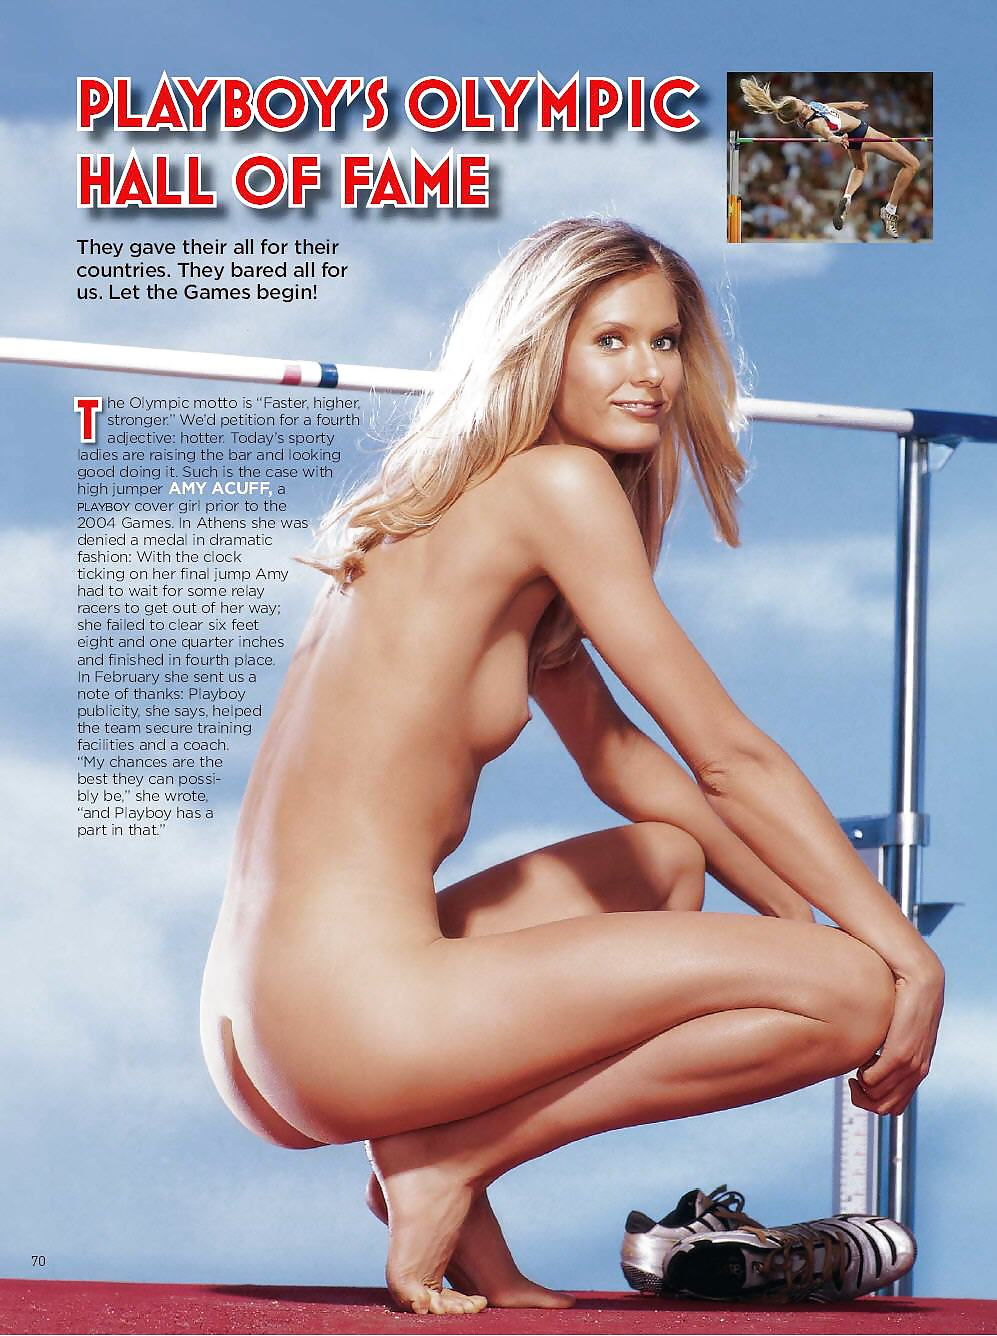 Athletes nude pics in playboy